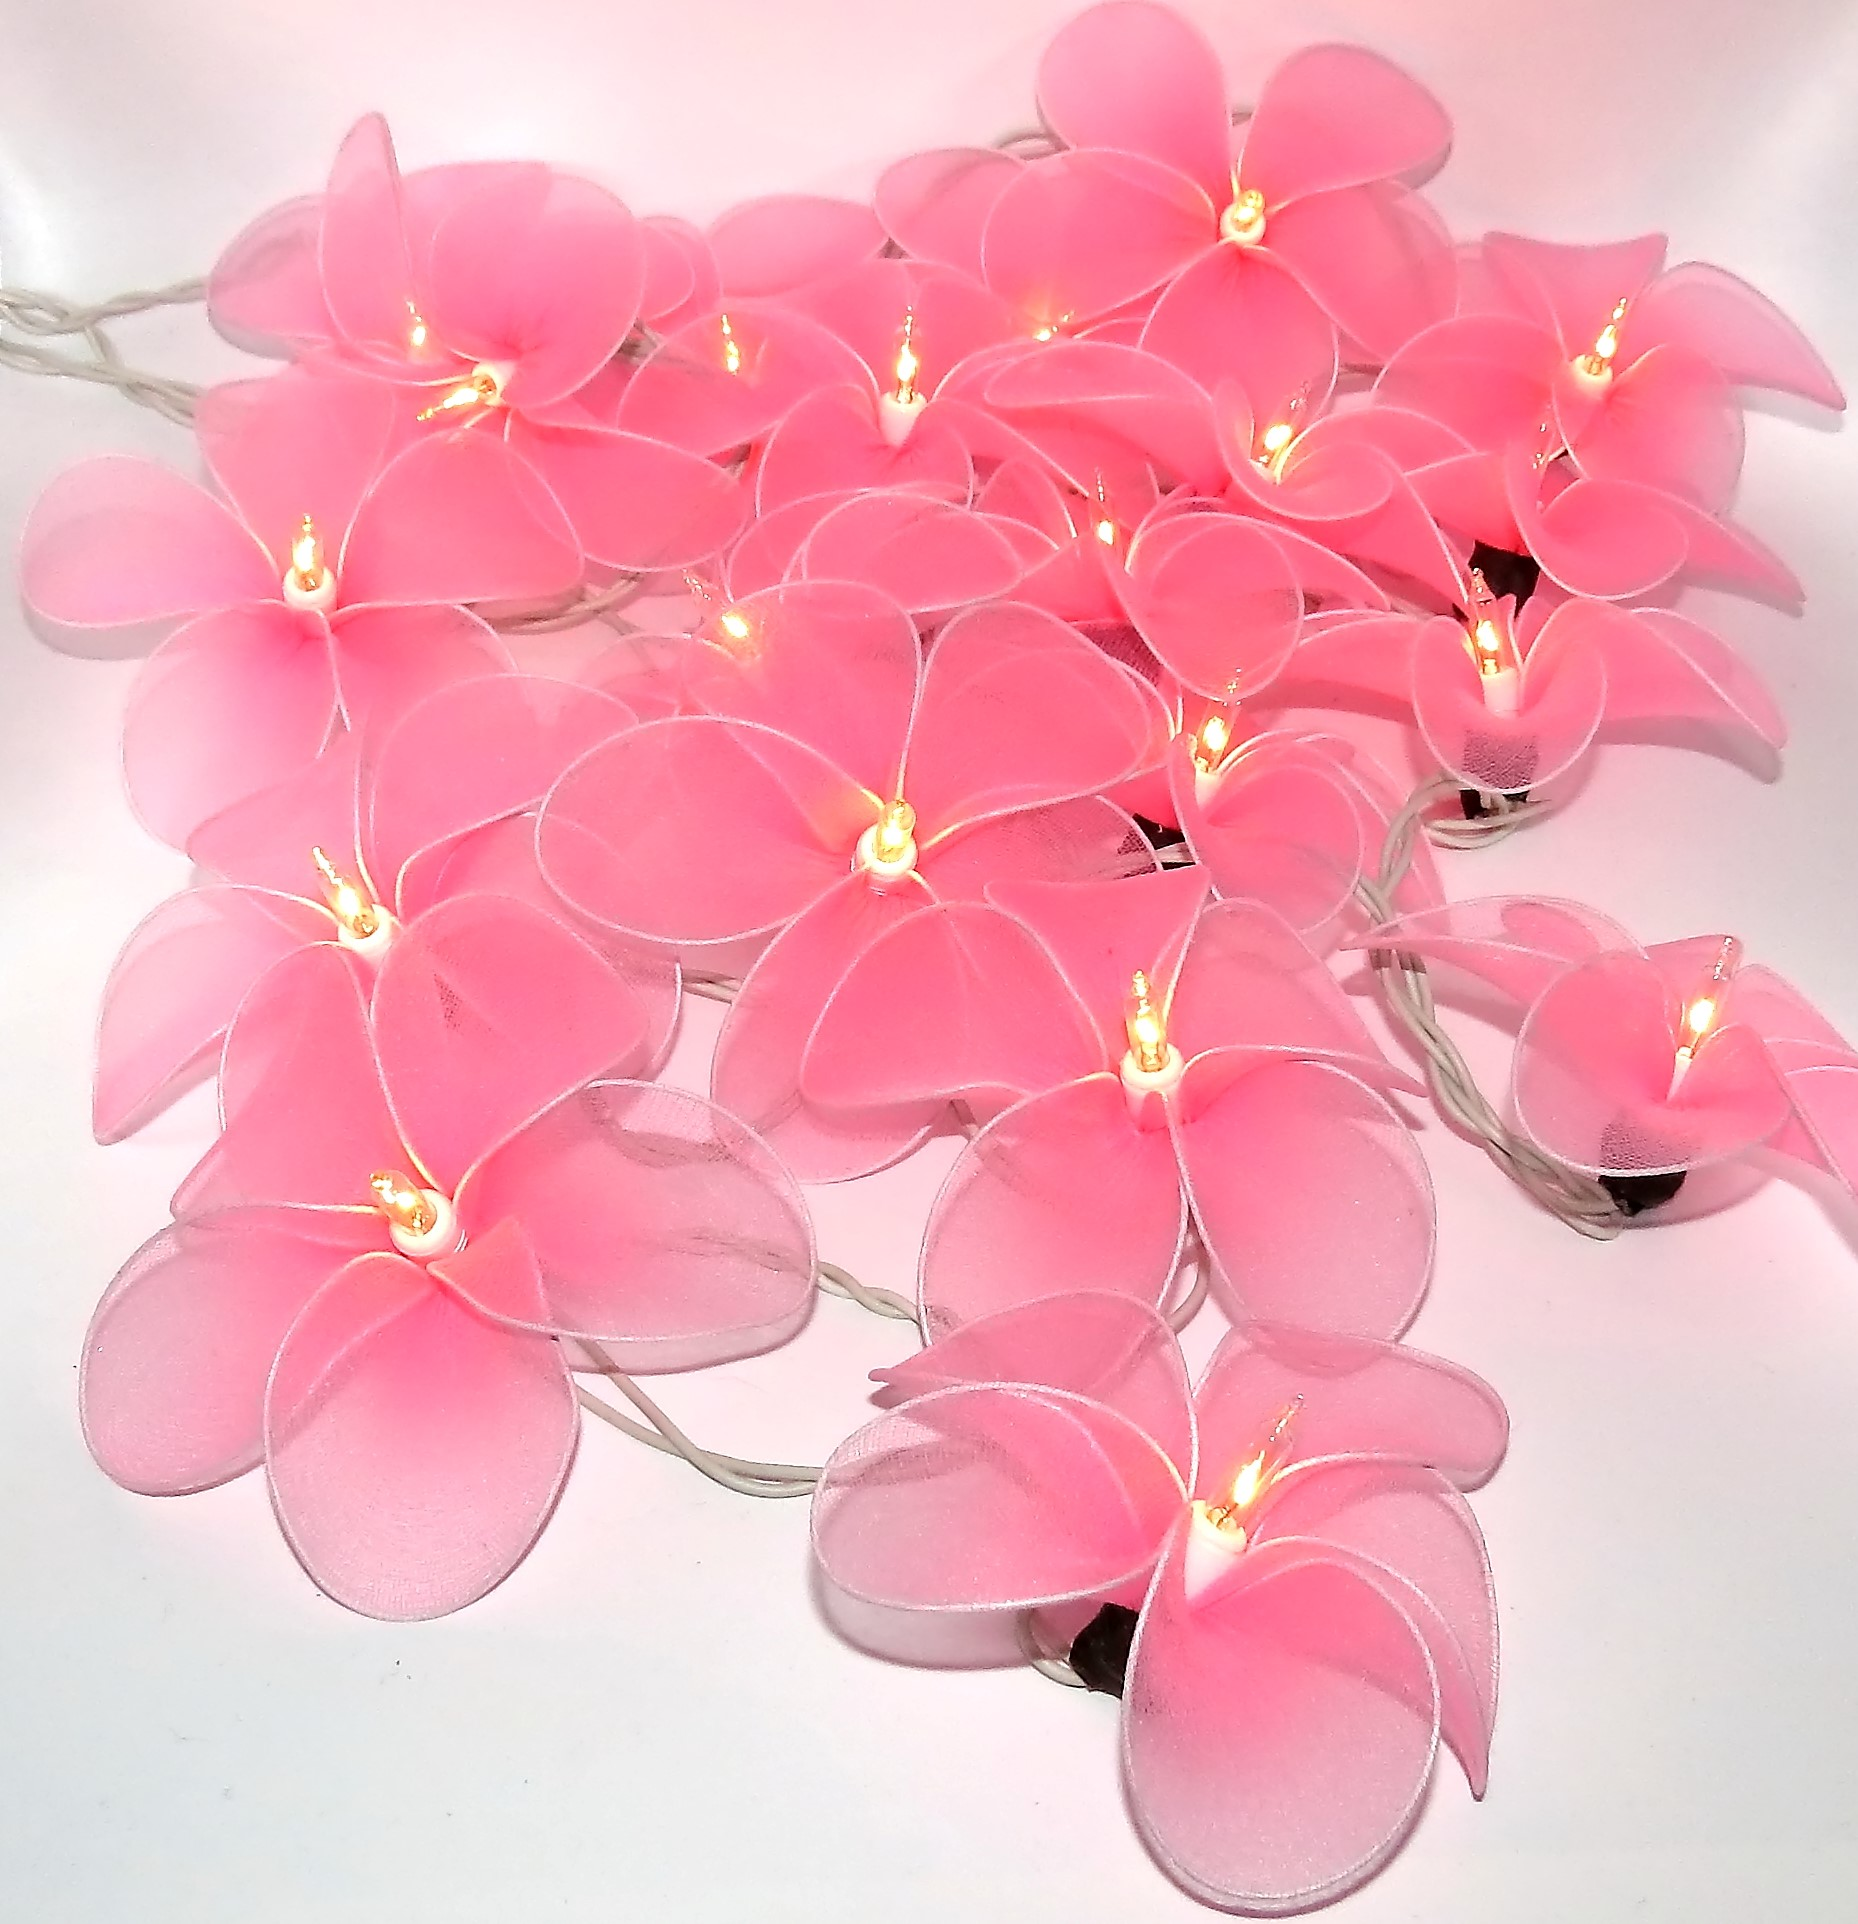 Frangipani Flower Fairy Lights Estreet